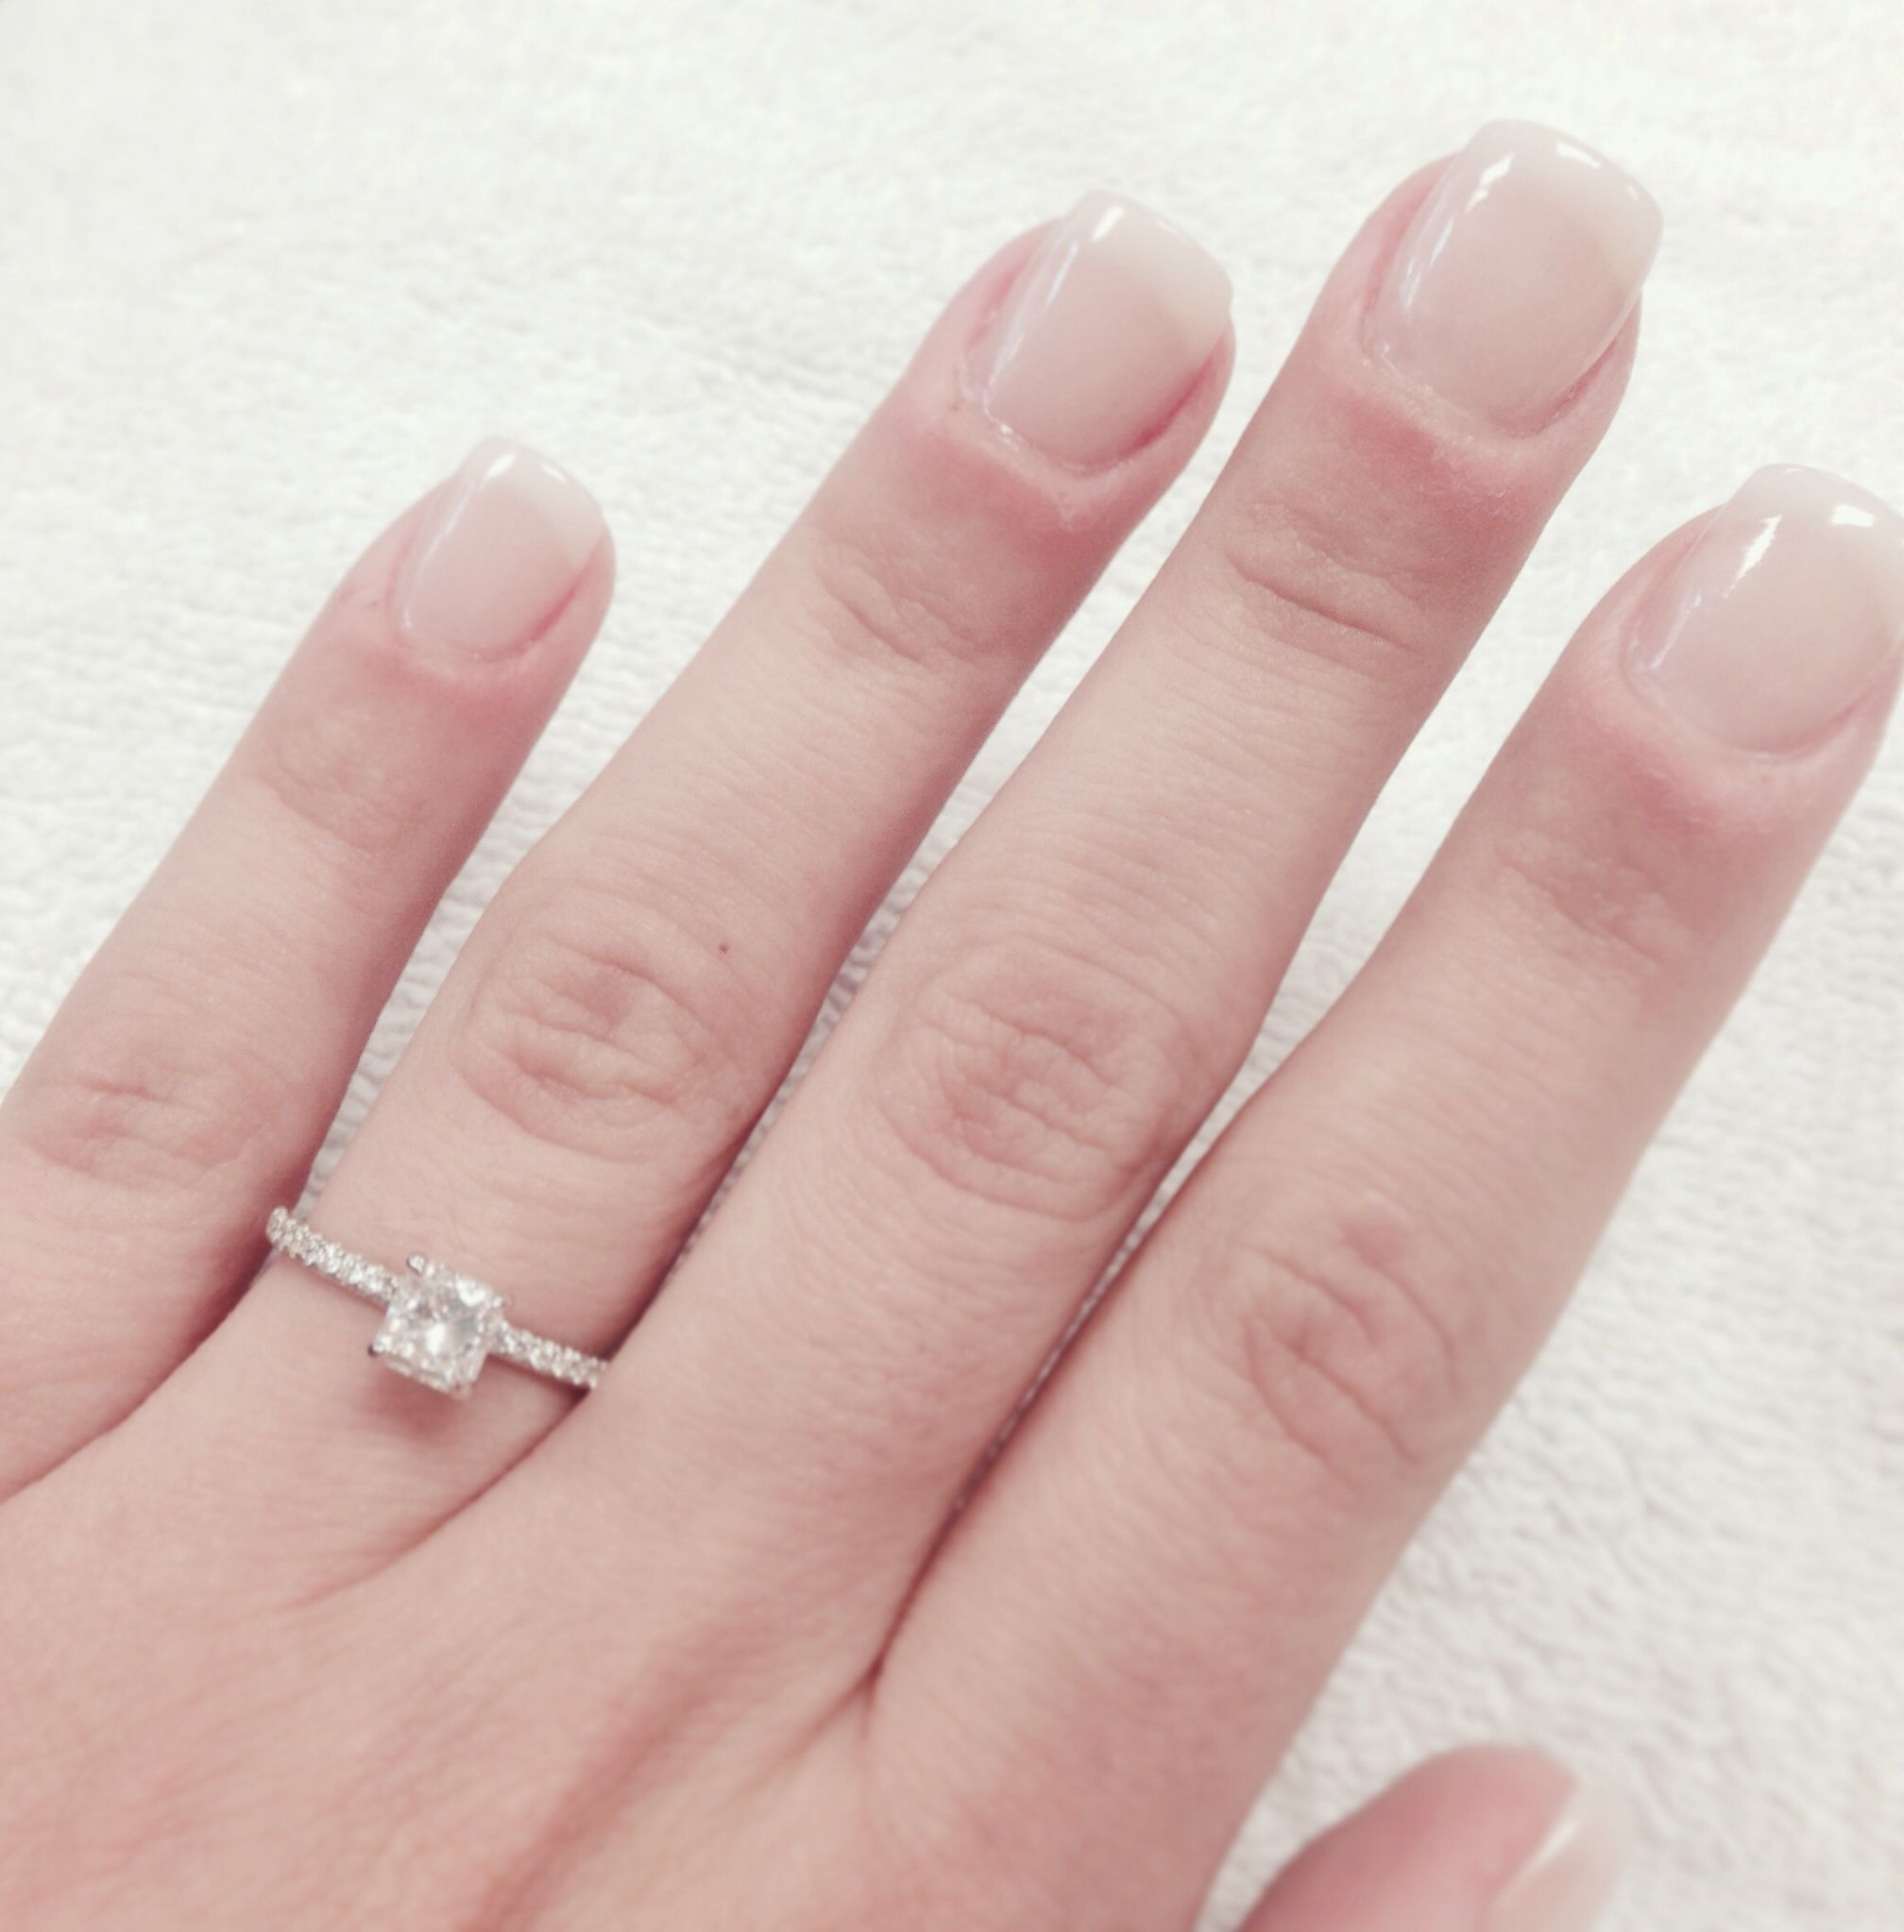 Radiant cut diamond. American manicure. Natural looking nails ...